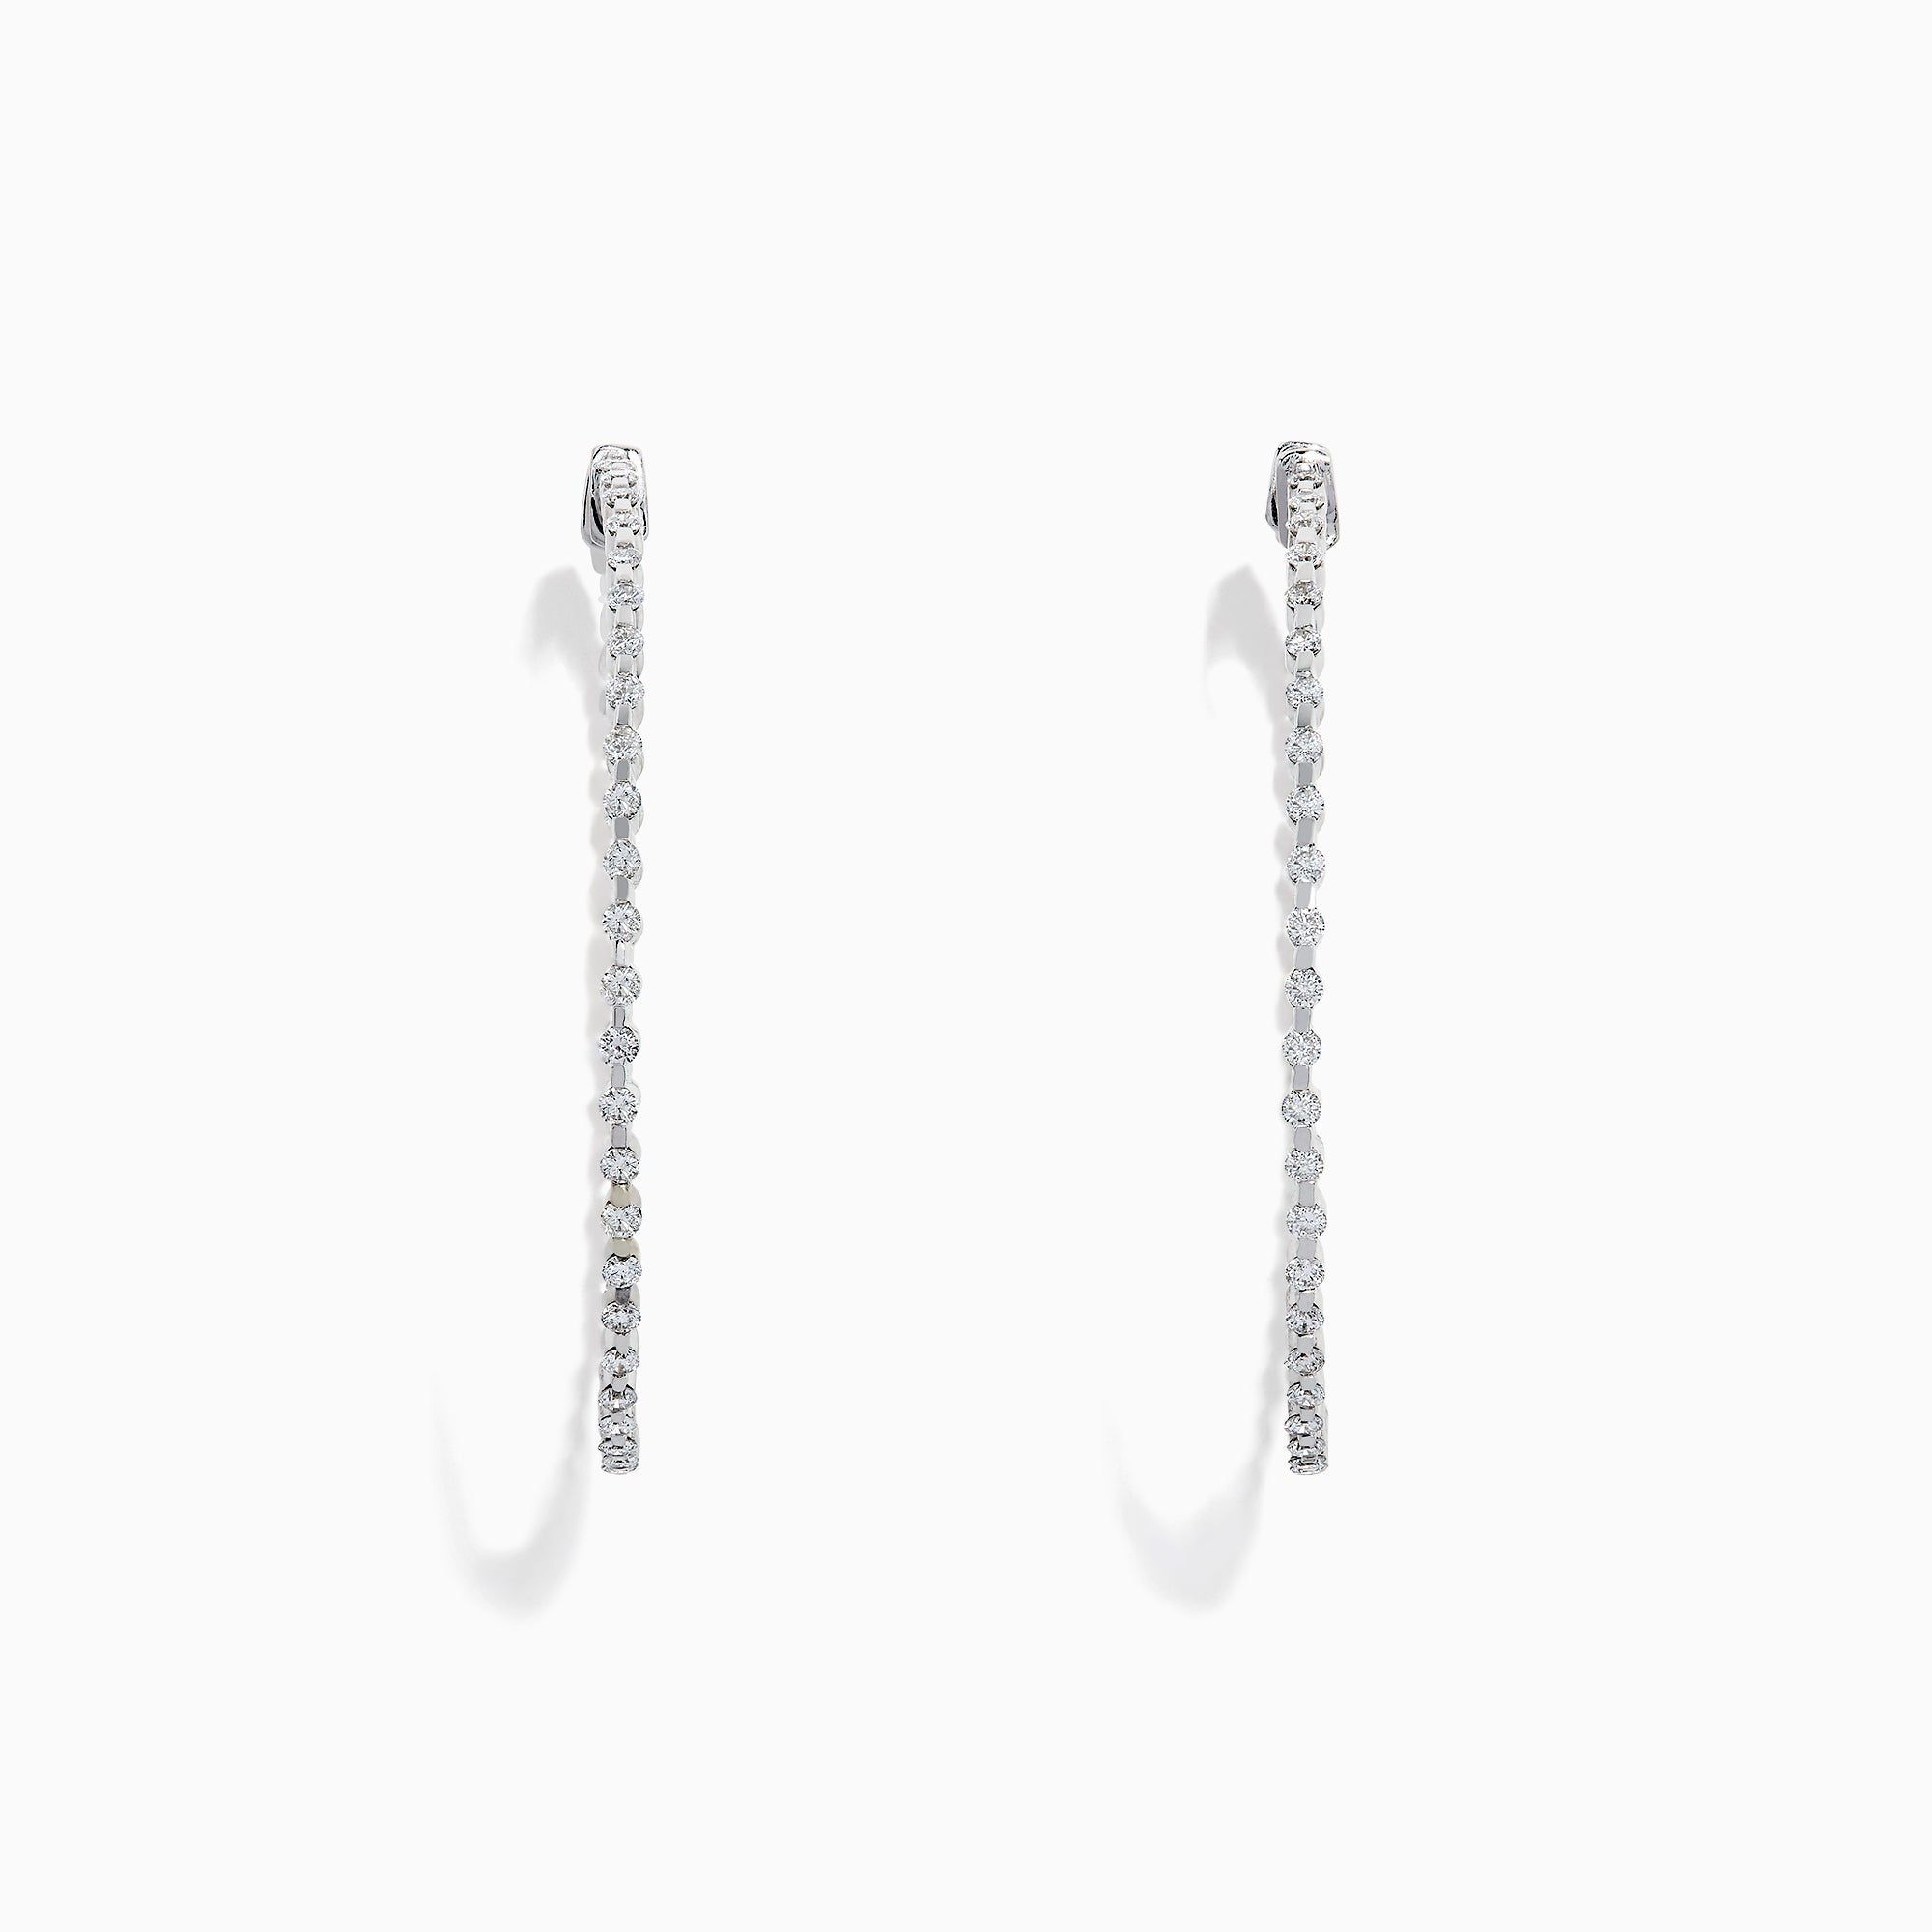 "Effy Pave Classica 14K White Gold Diamond 2"" Hoop Earrings, 2.65 TCW"